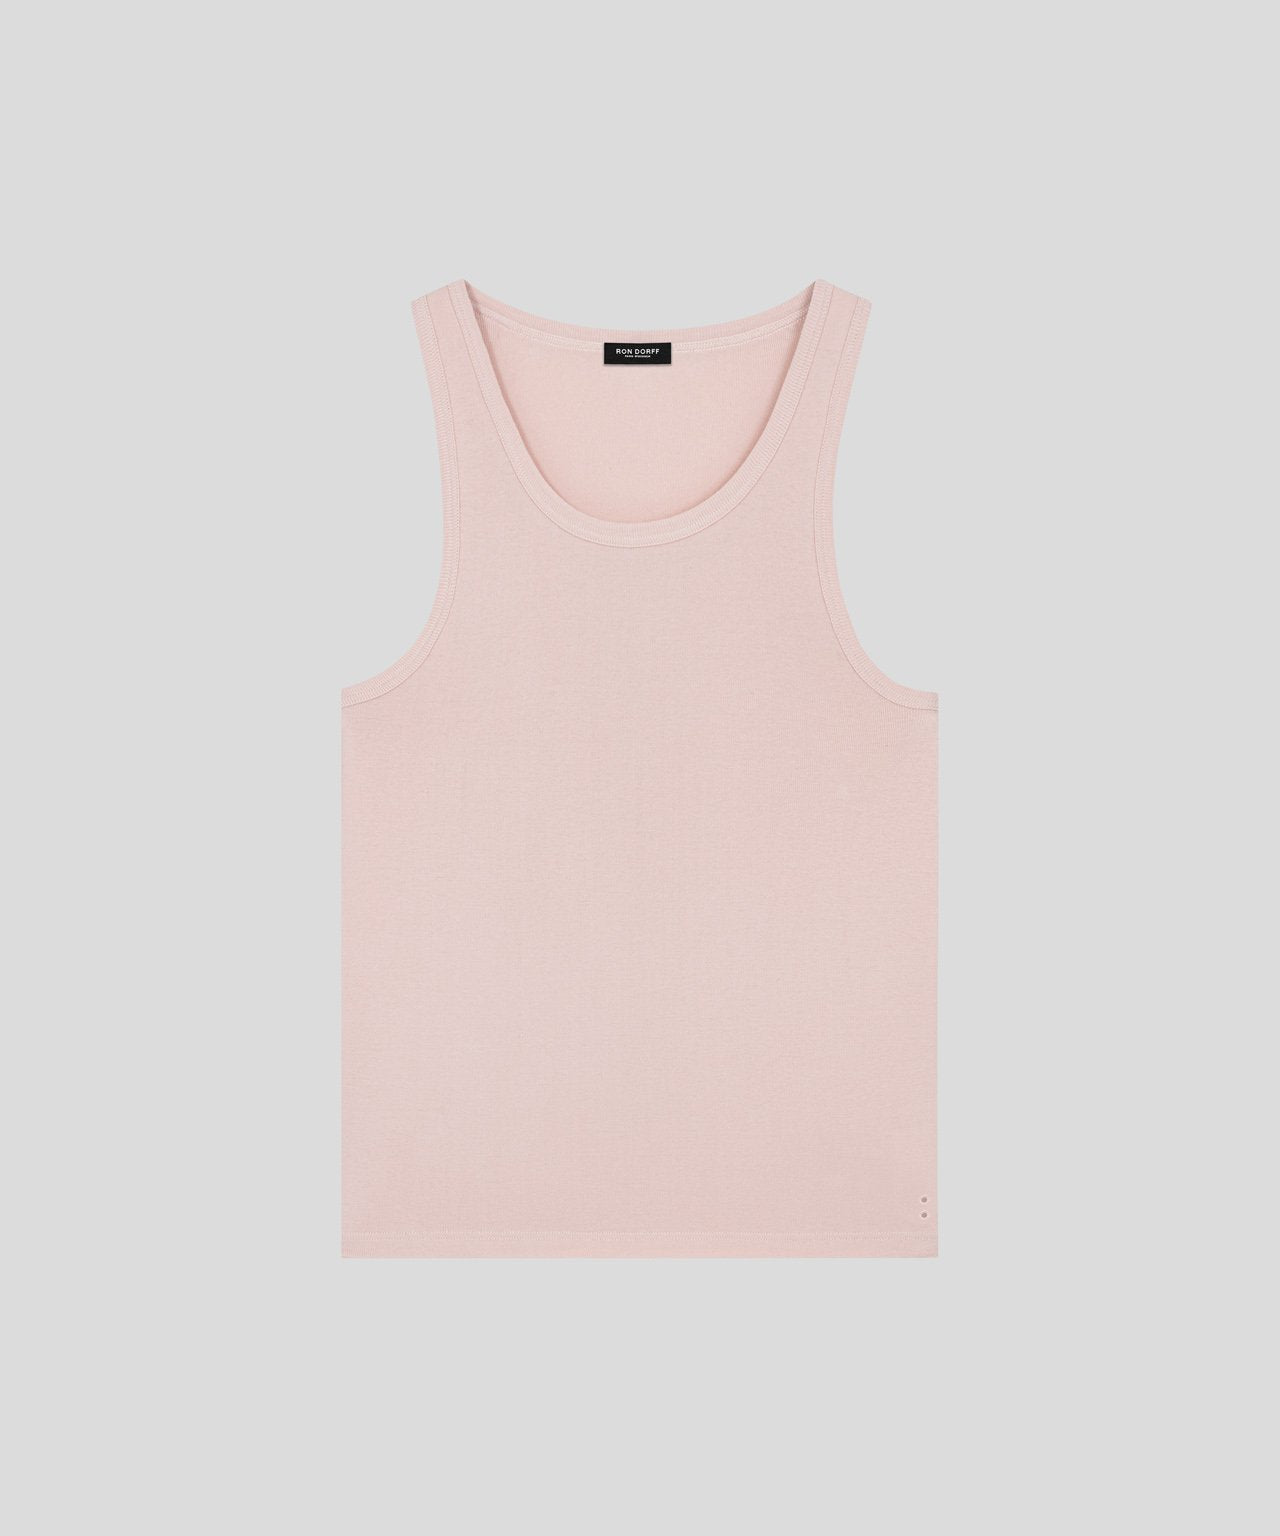 Ribbed Tank Top - pink